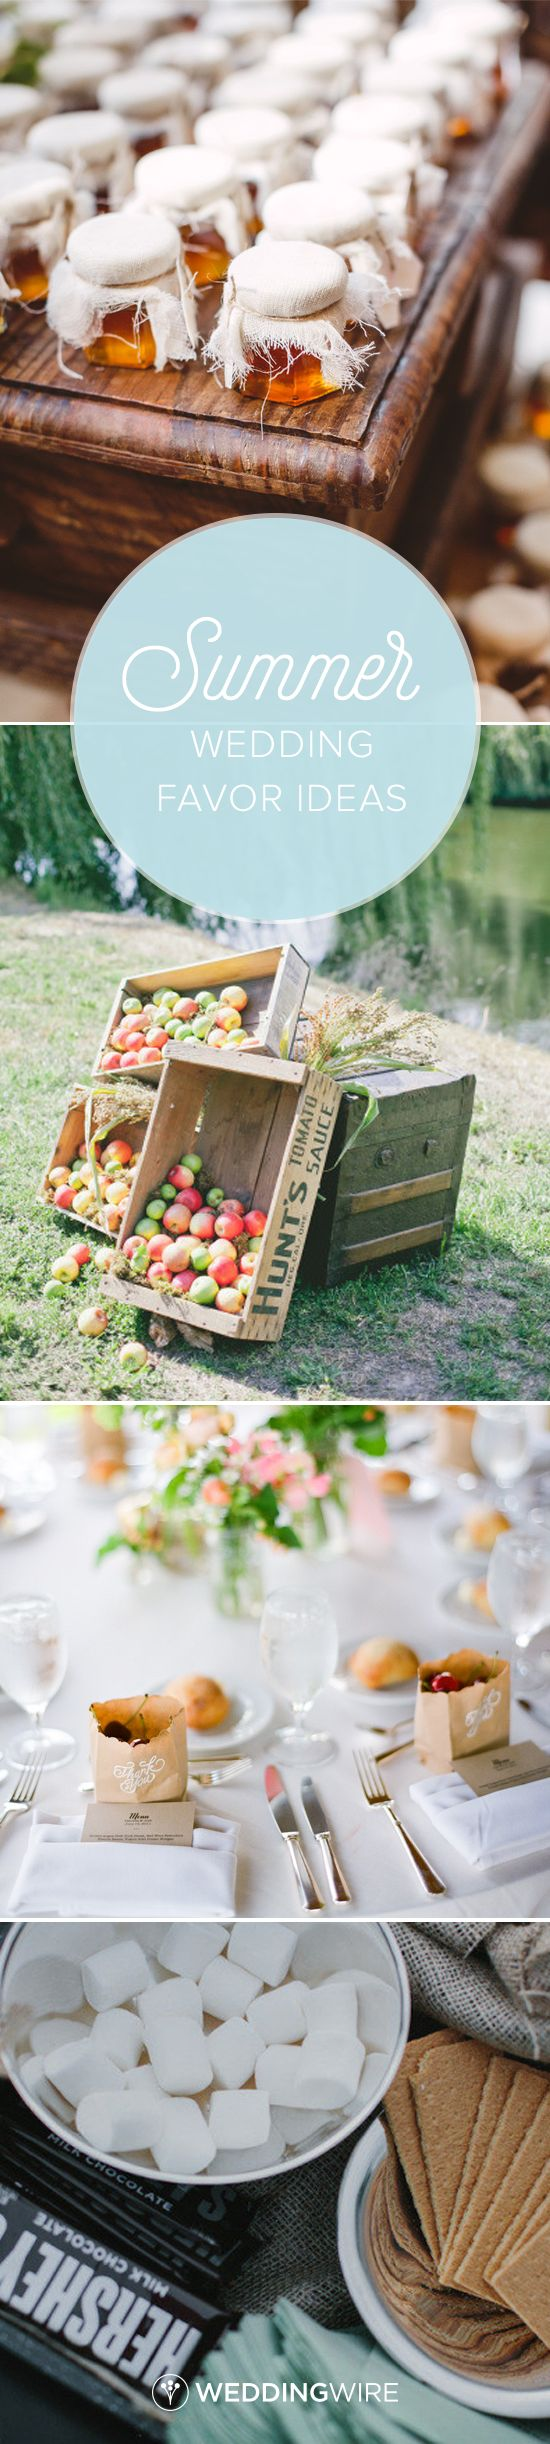 Summer wedding favor ideas - Find the perfect guest favor for your summer wedding on @weddingwire! {Mary Margaret Smith Photography, onelove photography, Tec Petaja Photography, For the Love of It}